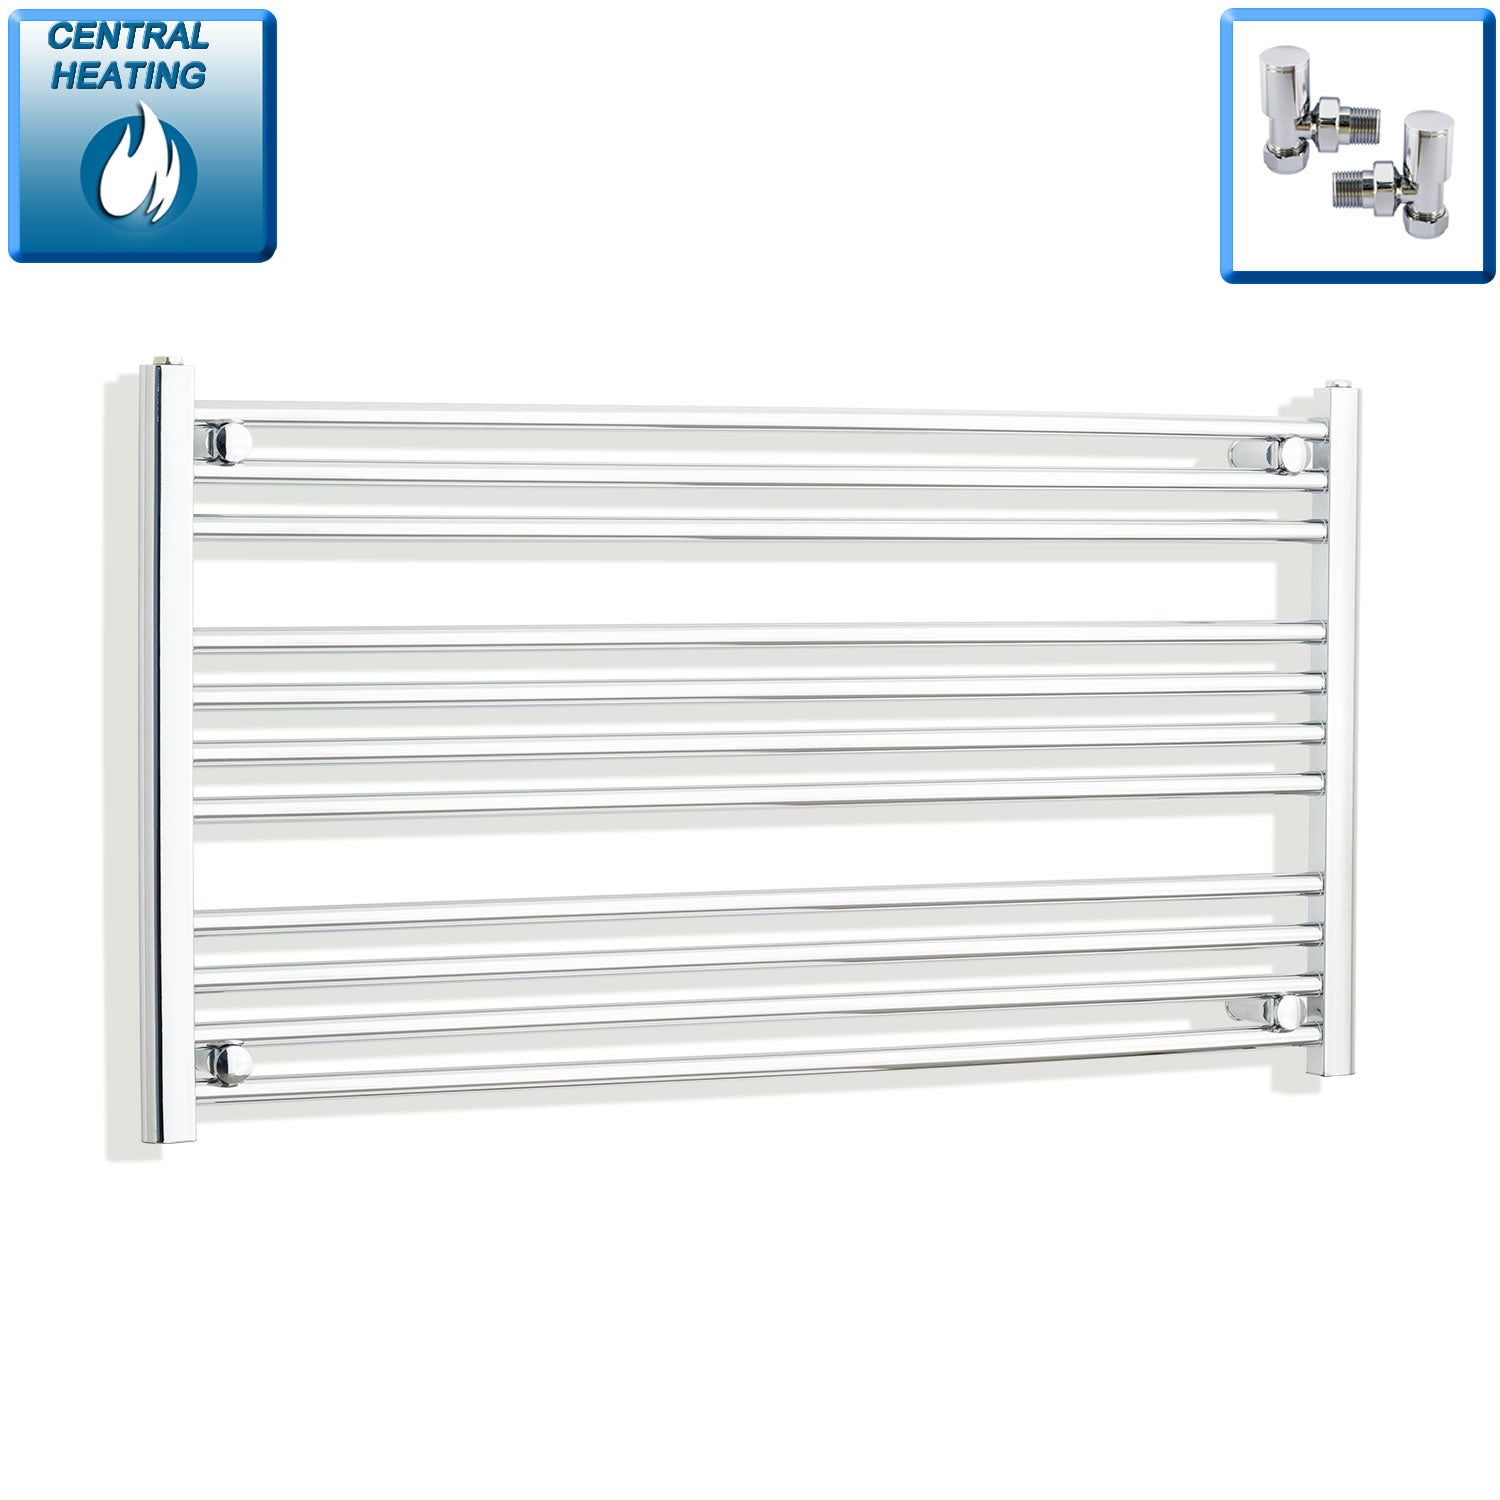 950mm Wide 600mm High Chrome Towel Rail Radiator With Angled Valve